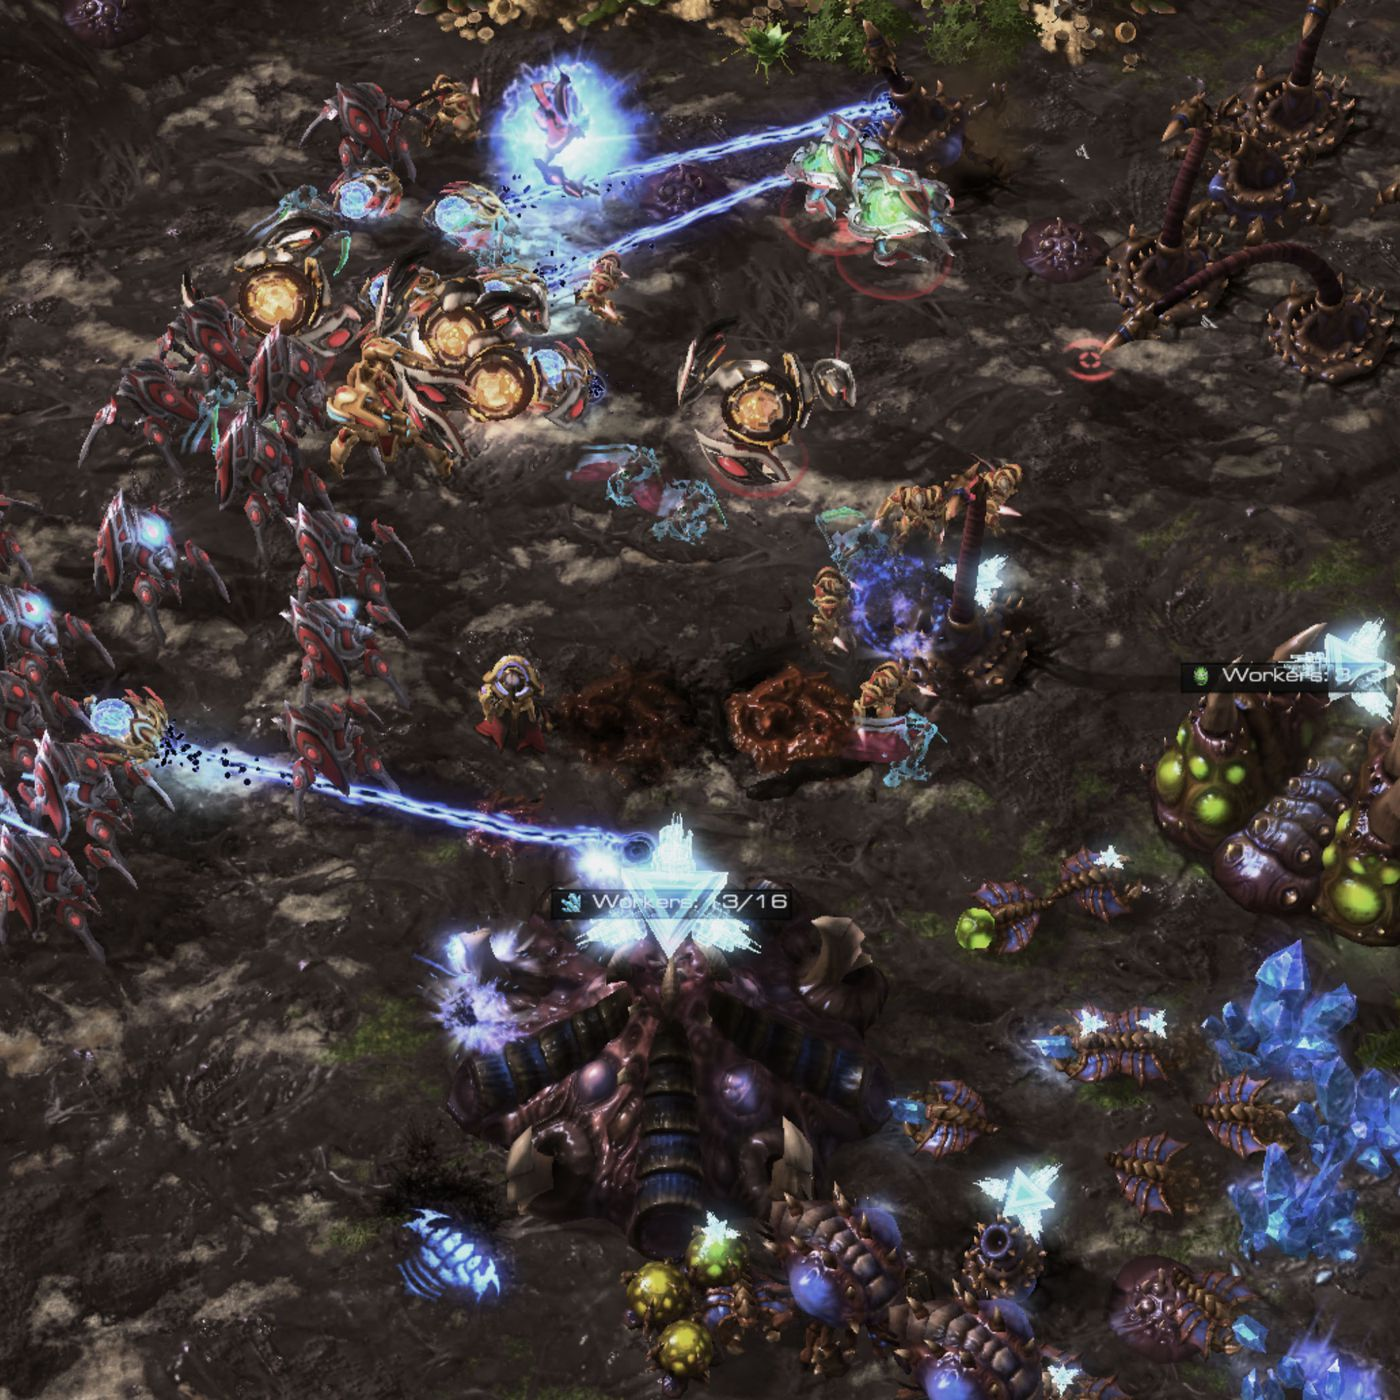 Deepmind S Starcraft 2 Ai Is Now Better Than 99 8 Percent Of All Human Players The Verge